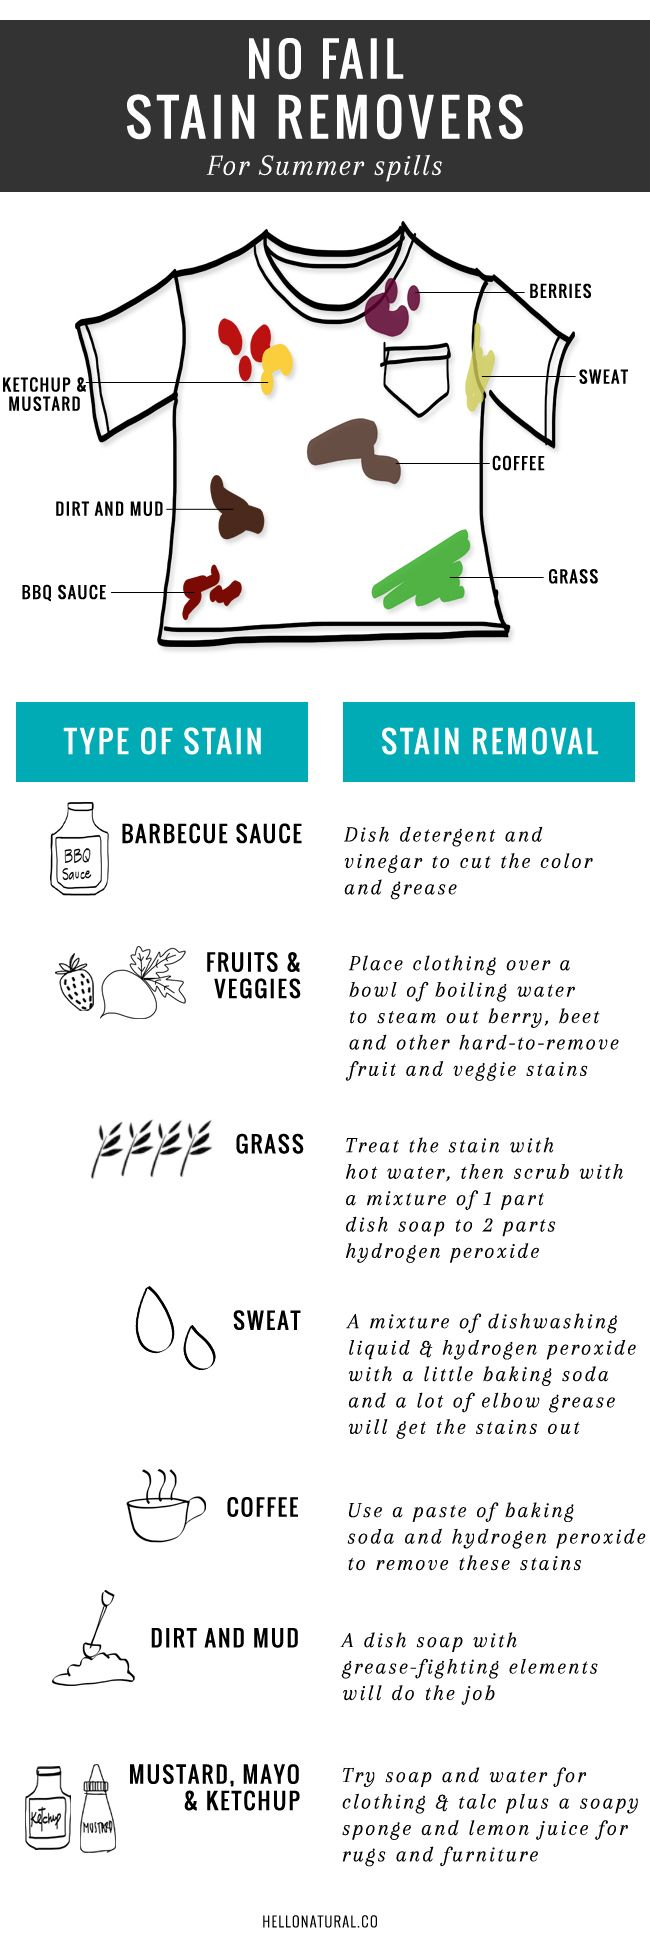 7 Best Natural Stain Removers | HelloNatural.co